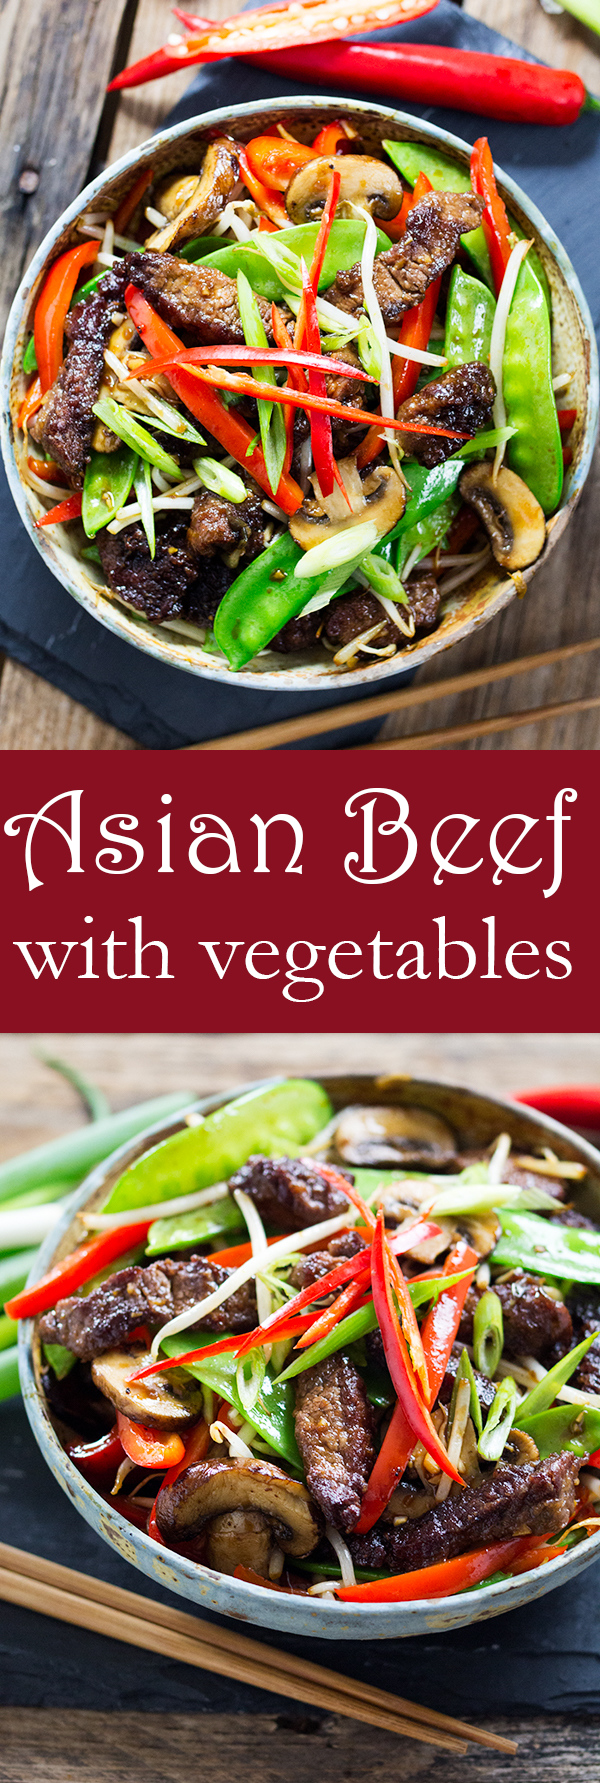 asian beef vegetables pin